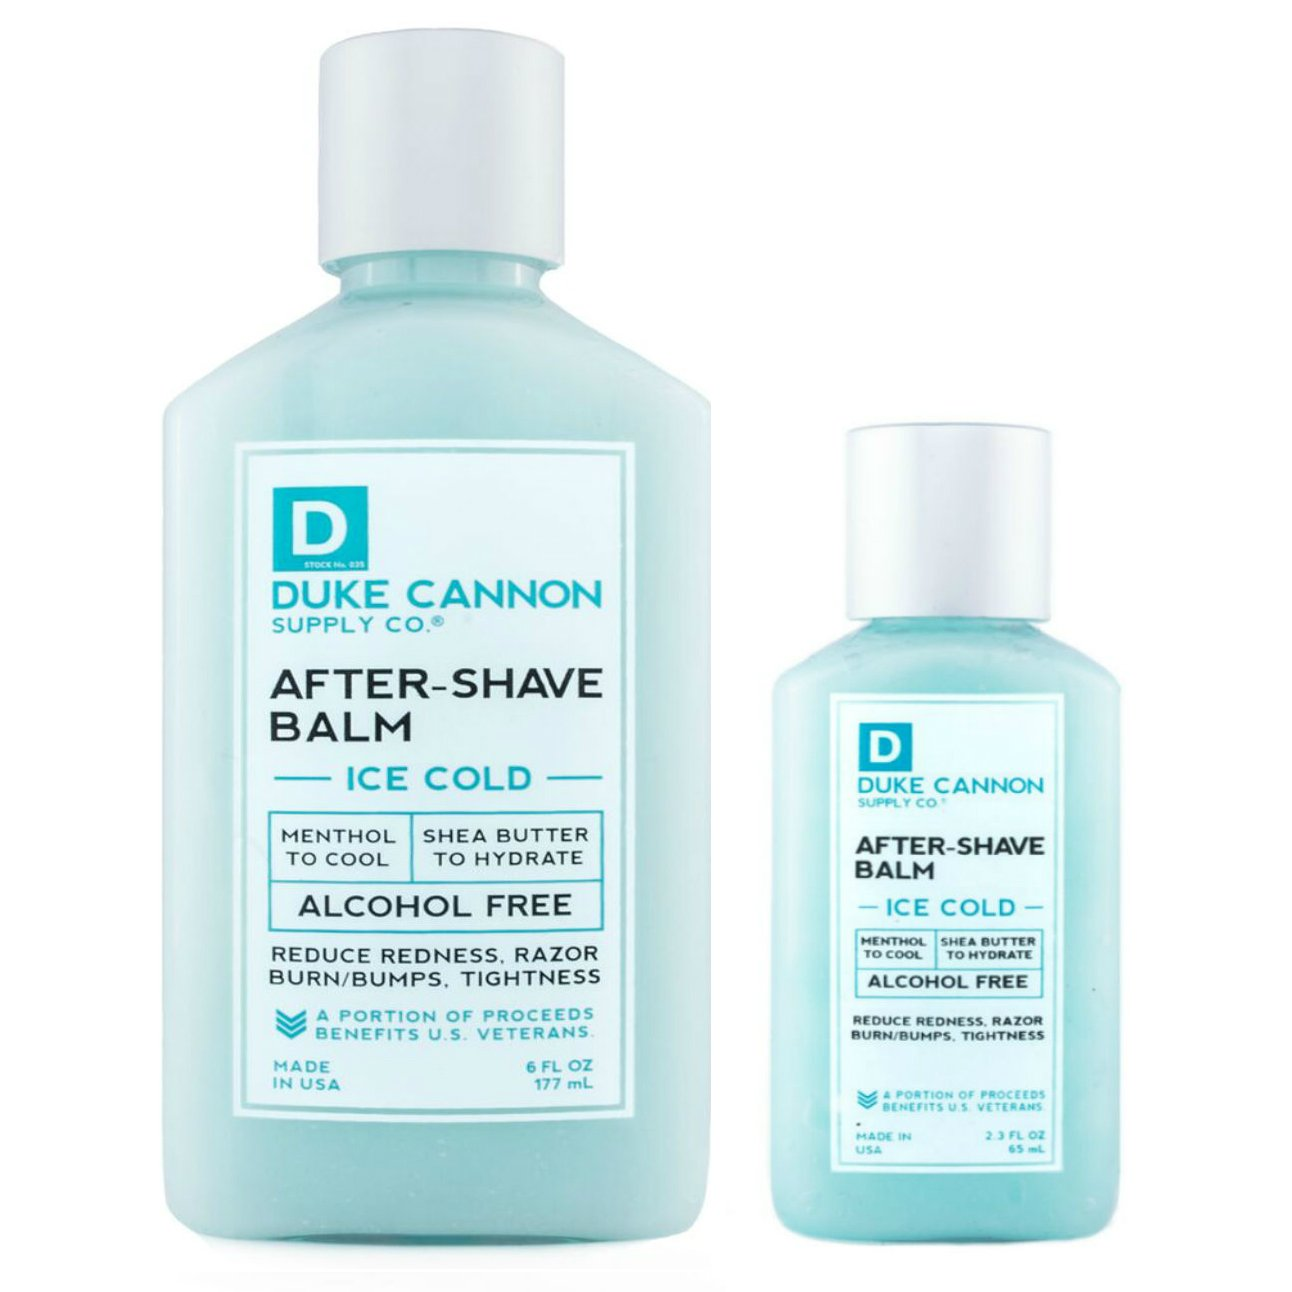 Duke Cannon Ice Cold After-Shave Balm Bundle, 2.3oz and 6oz / Reduces Redness, Razor Burn, Bumps, Alcohol-Free